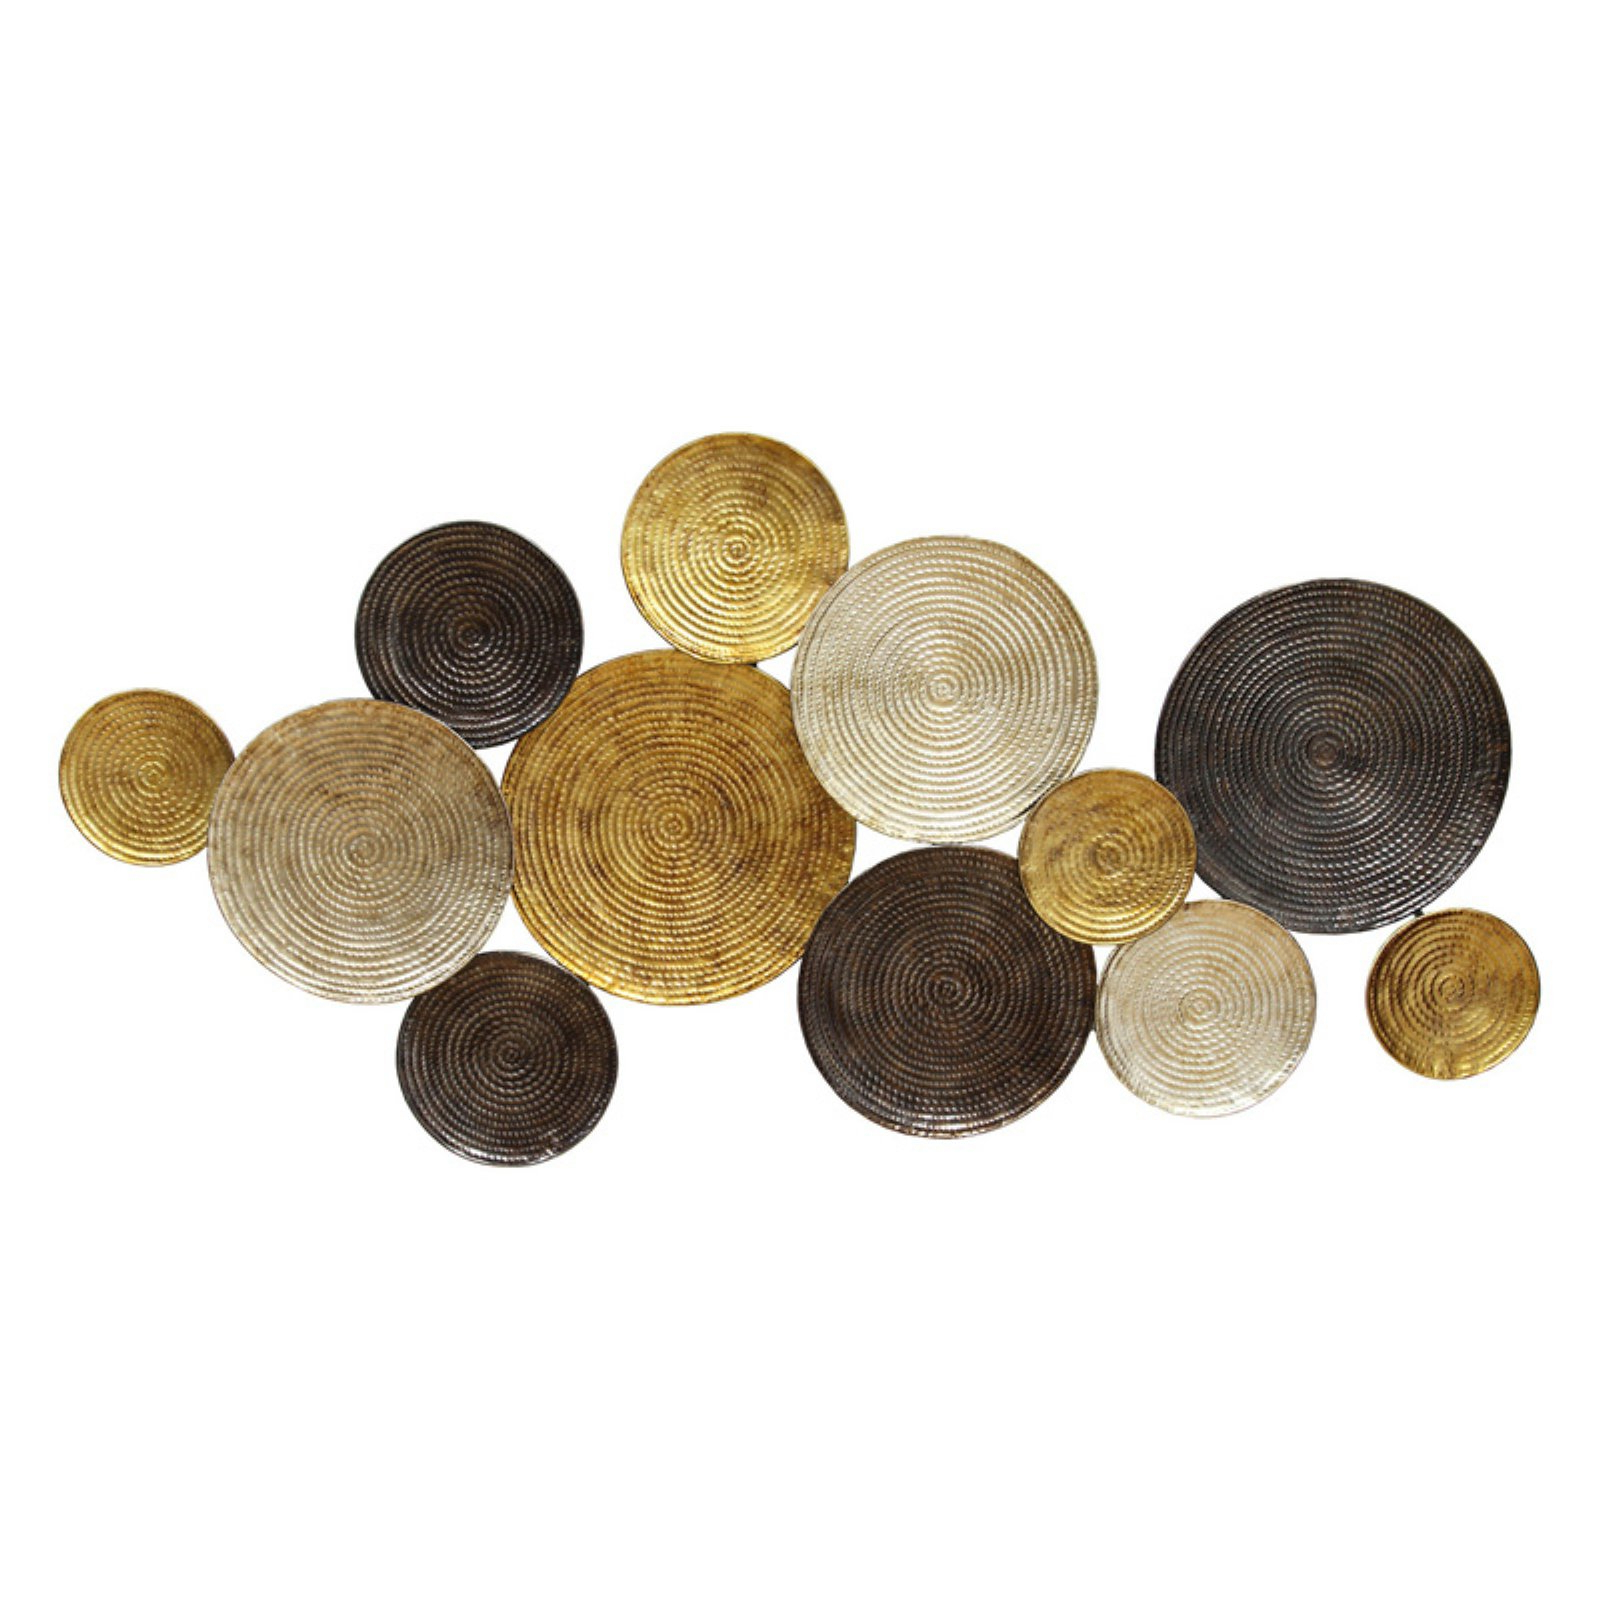 Famous Multi Circles Wall Décor With Regard To Stratton Home Decor Multi Circles Wall Decor – Walmart (View 3 of 20)